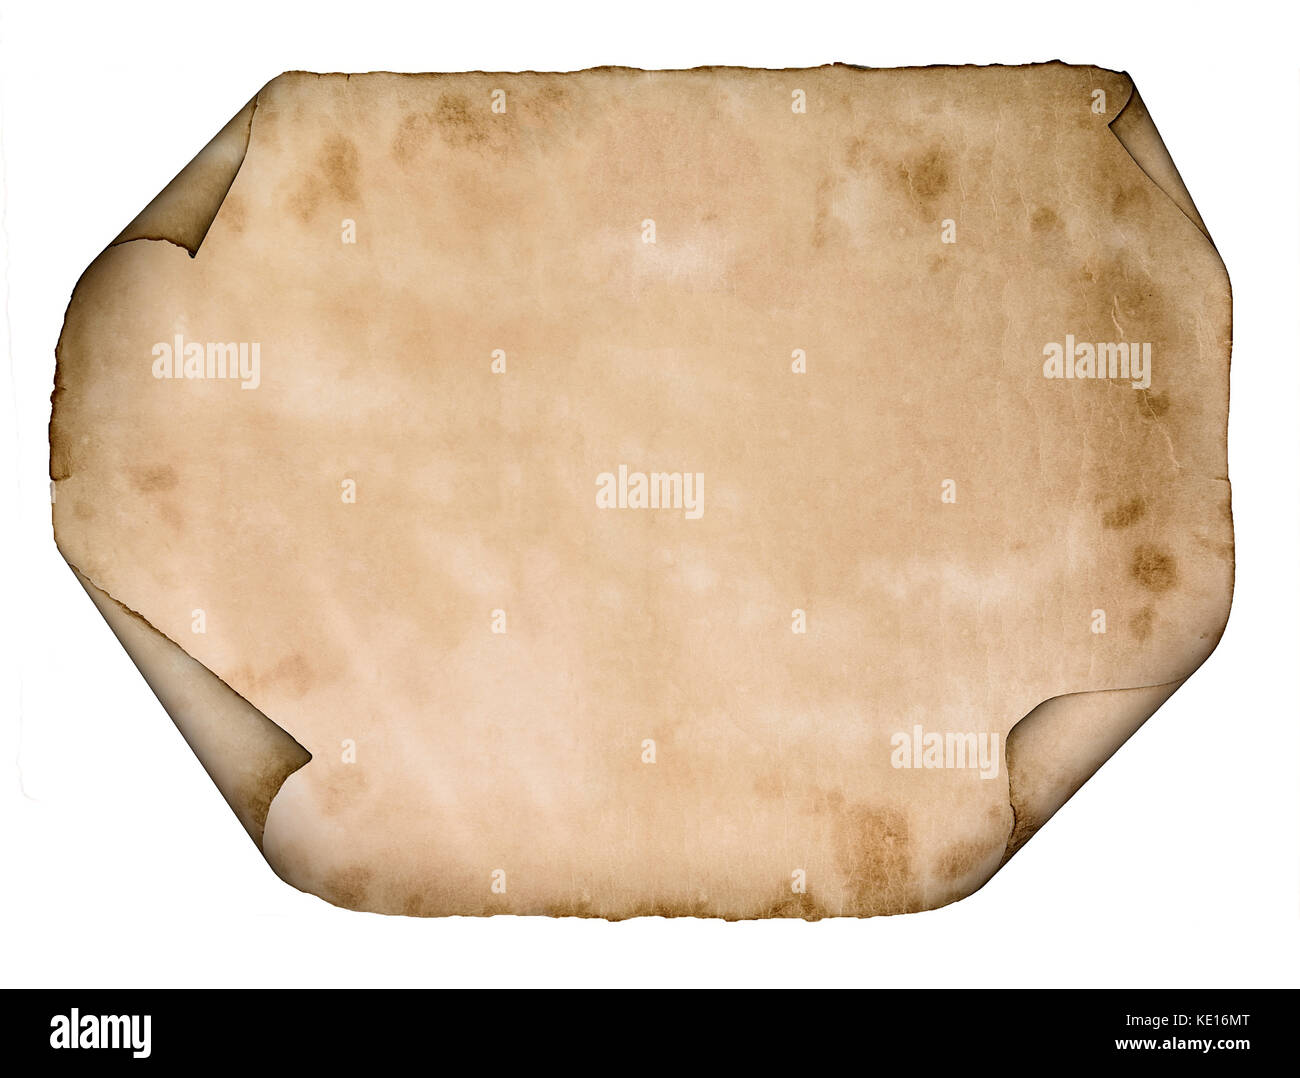 old paper parchment scroll isolated on white background - Stock Image